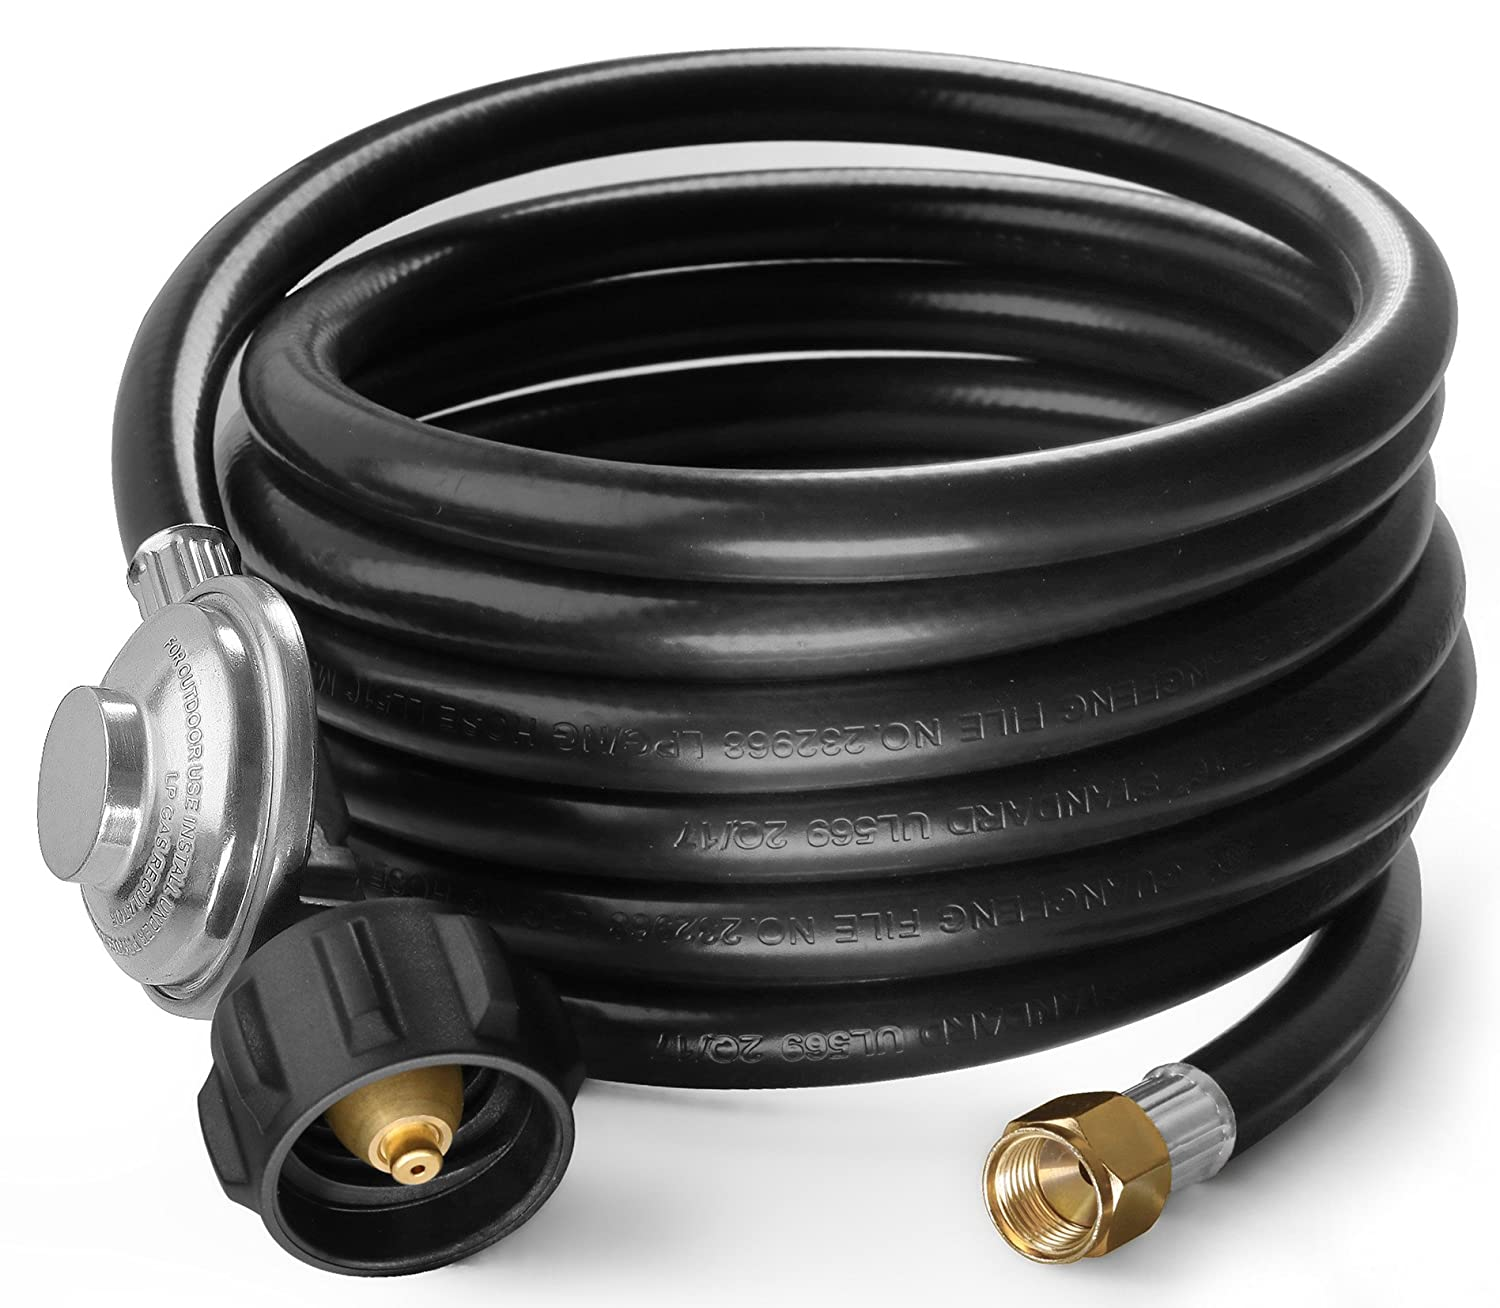 "DOZYANT 12 Feet Universal QCC1 Low Pressure Propane Regulator Grill Replacement with 12 FT Hose for Most LP Gas Grill, Heater and Fire Pit Table, 3/8"" Female Flare Nut"